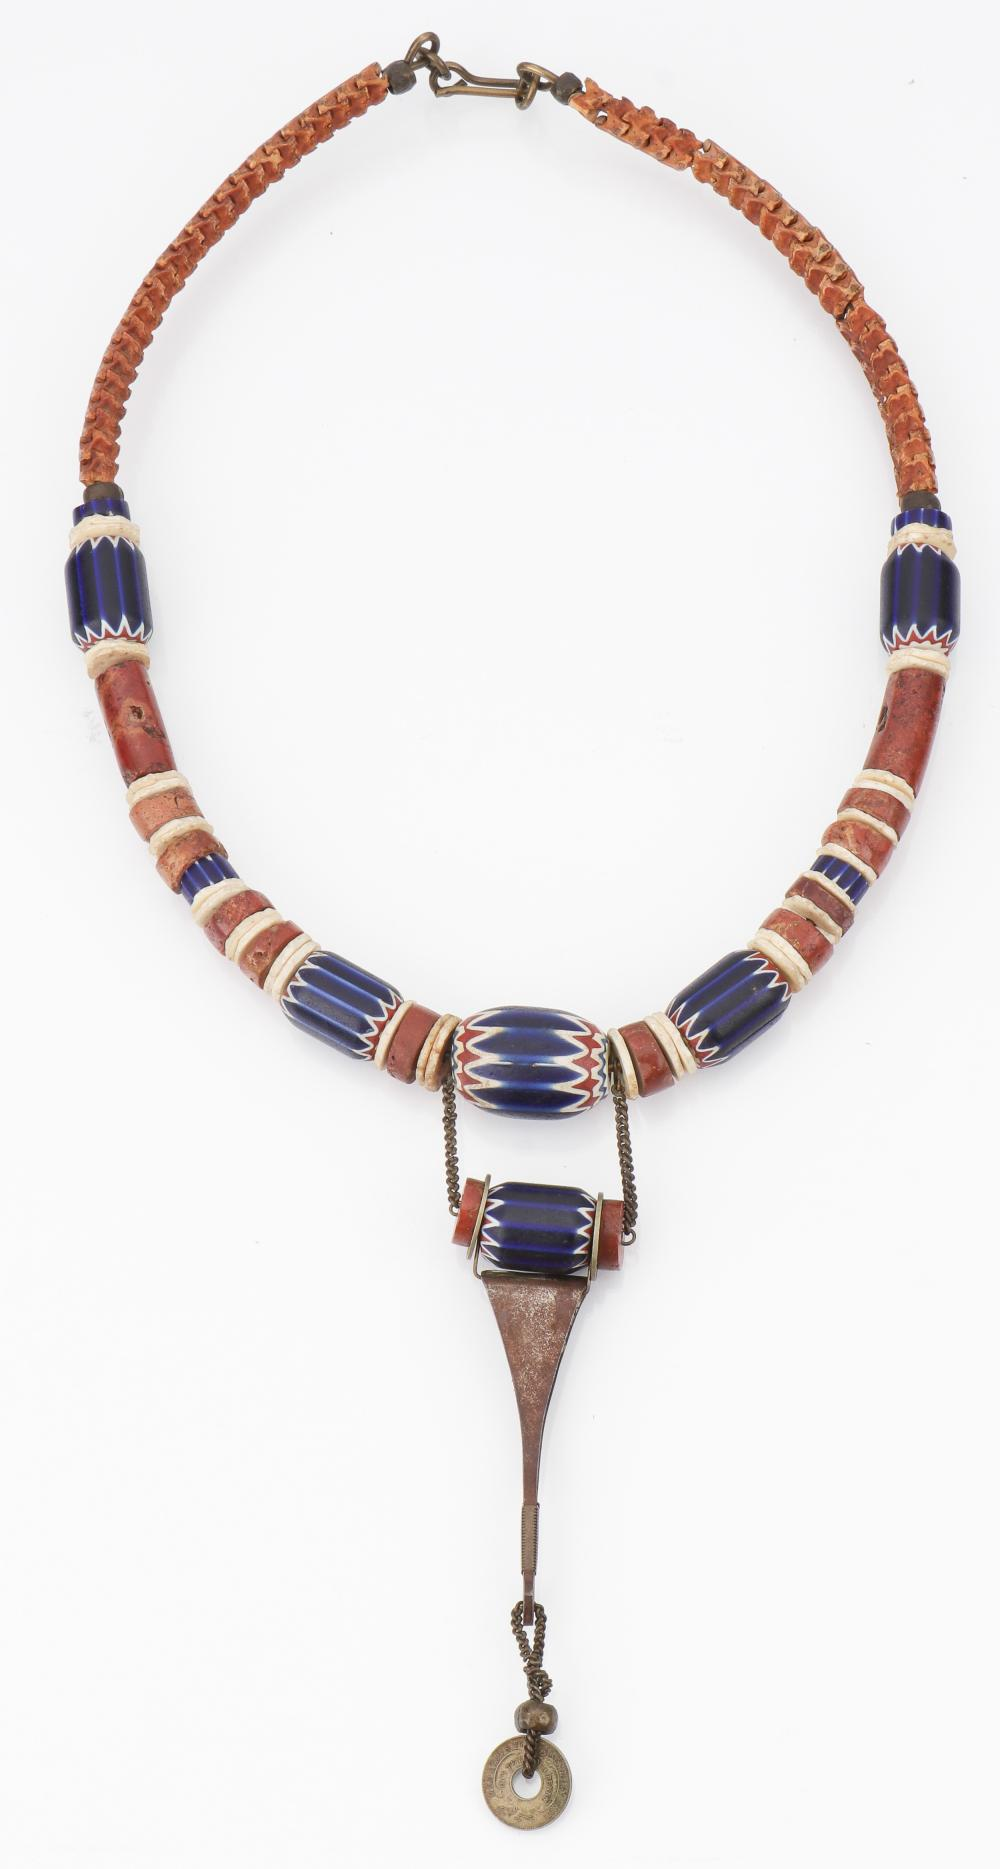 African Necklace with Antique Chevron Beads and Coin